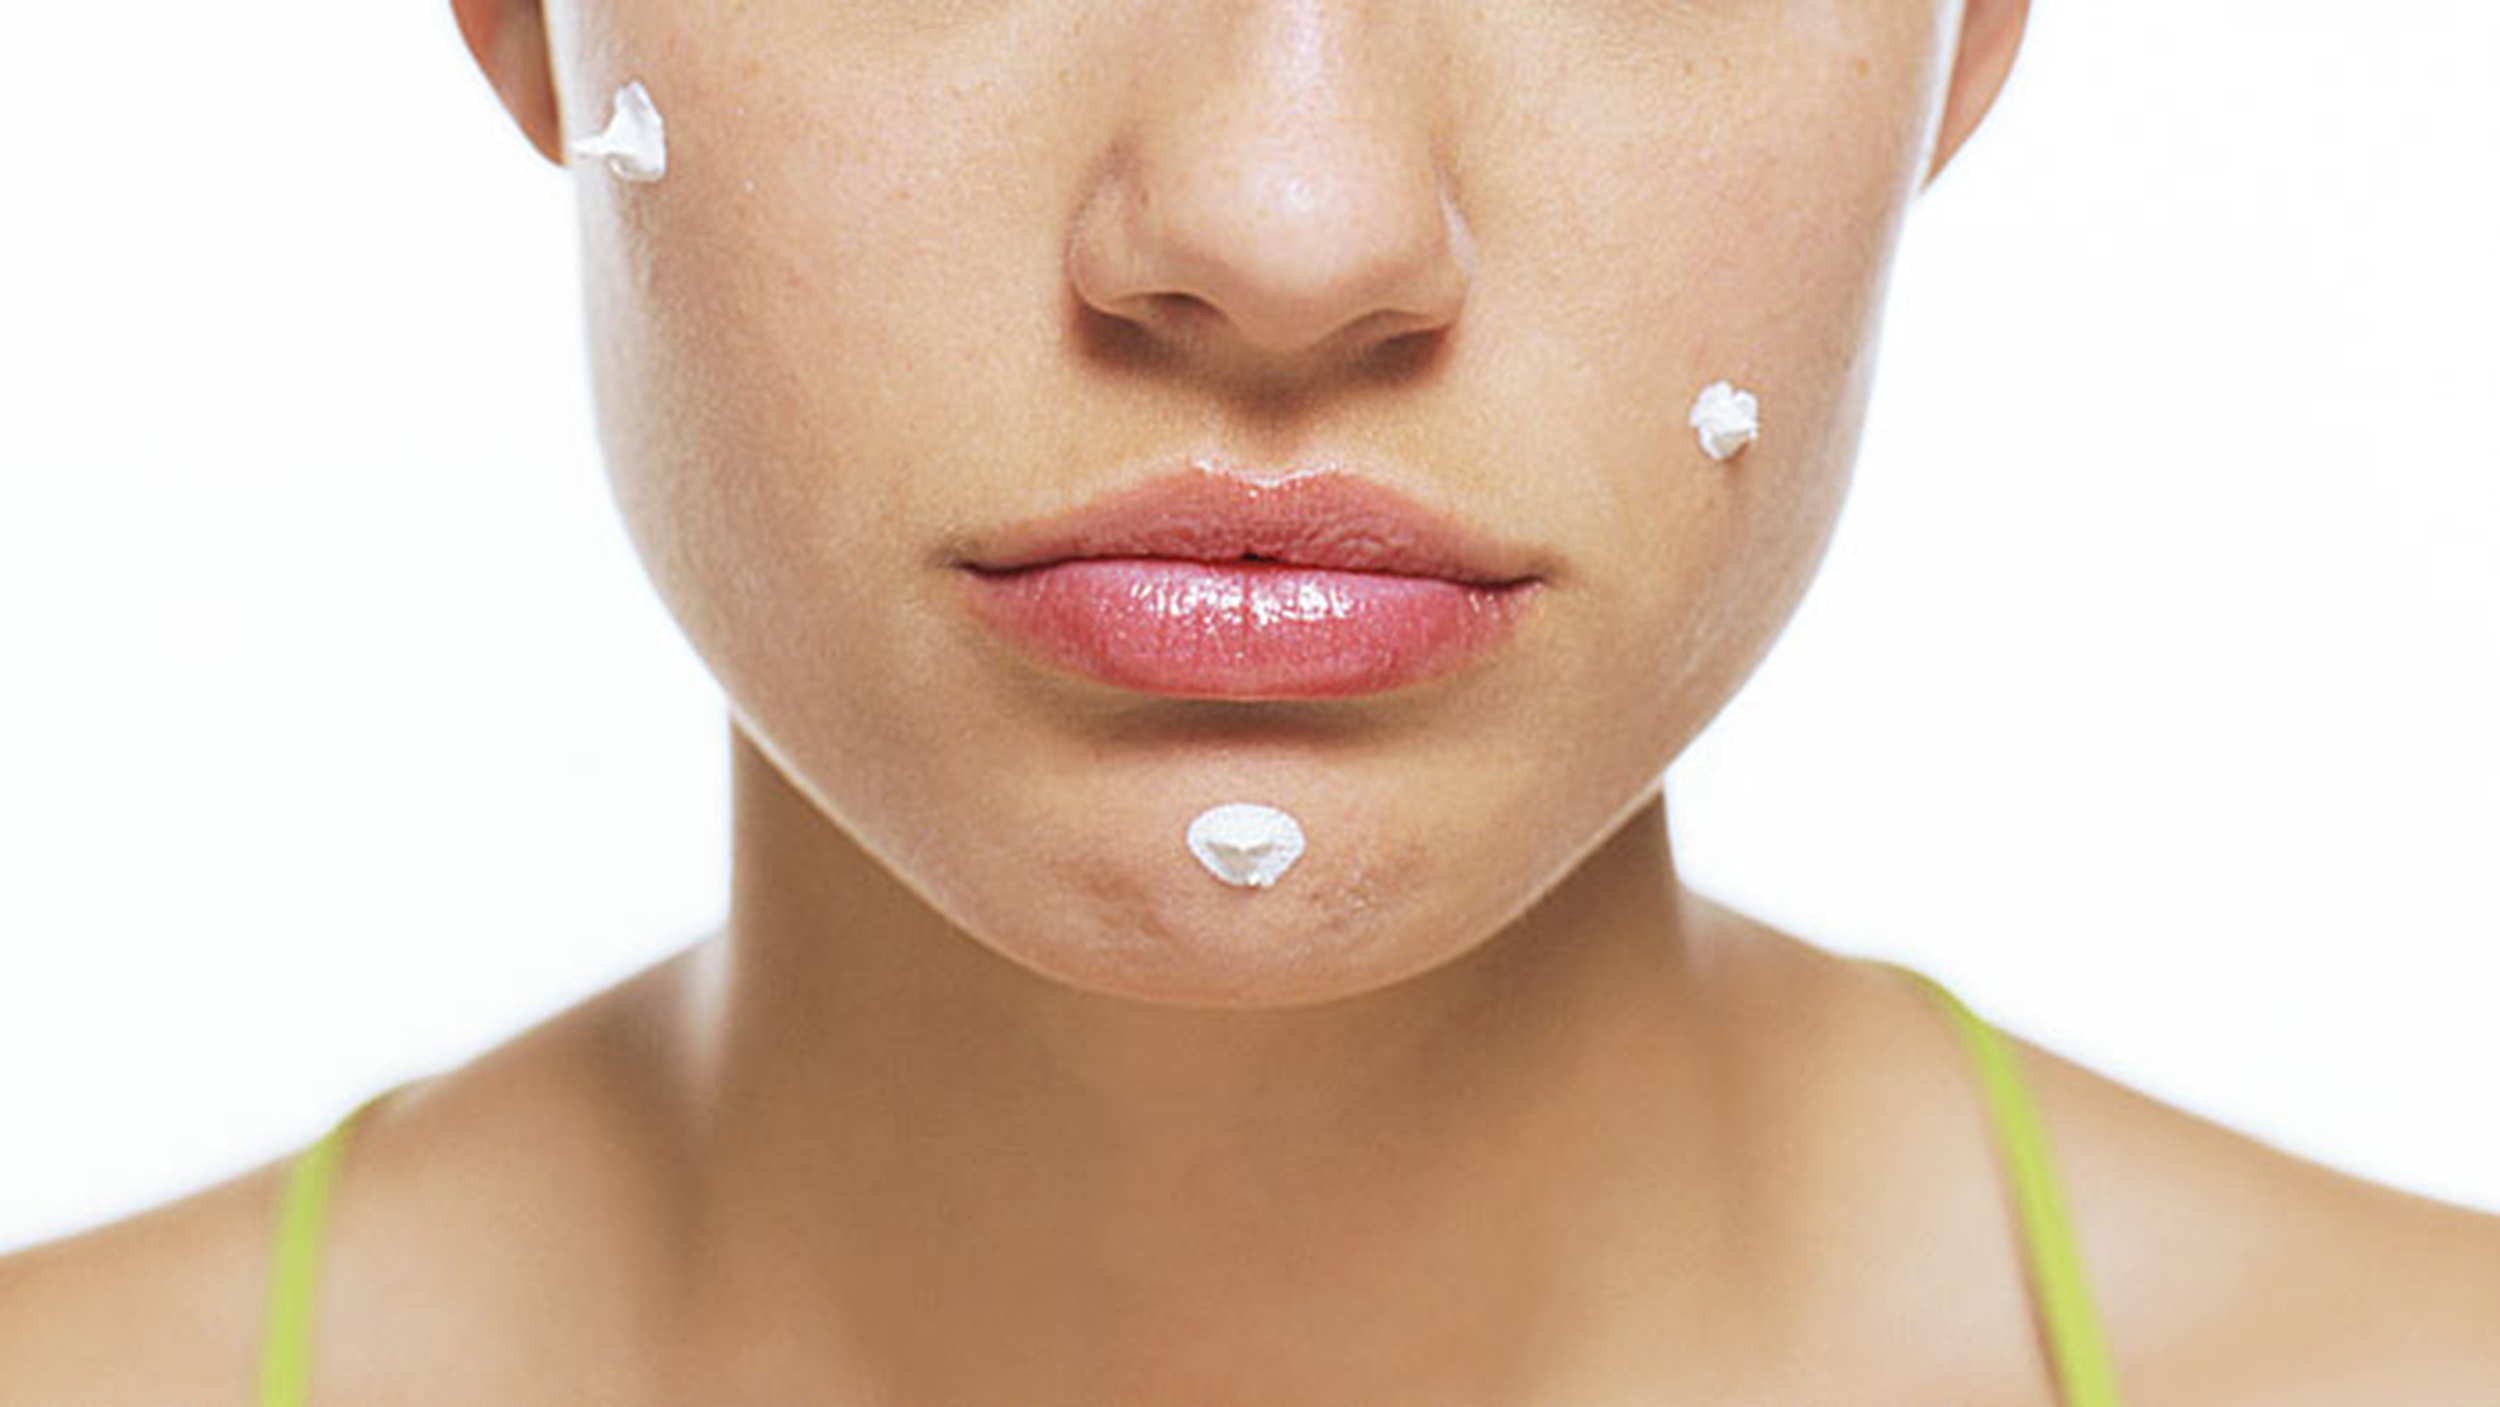 adult-acne-cures-stock-today-160212-tease_7997ee0de96317bd29183ae2f62c9ff8.jpg